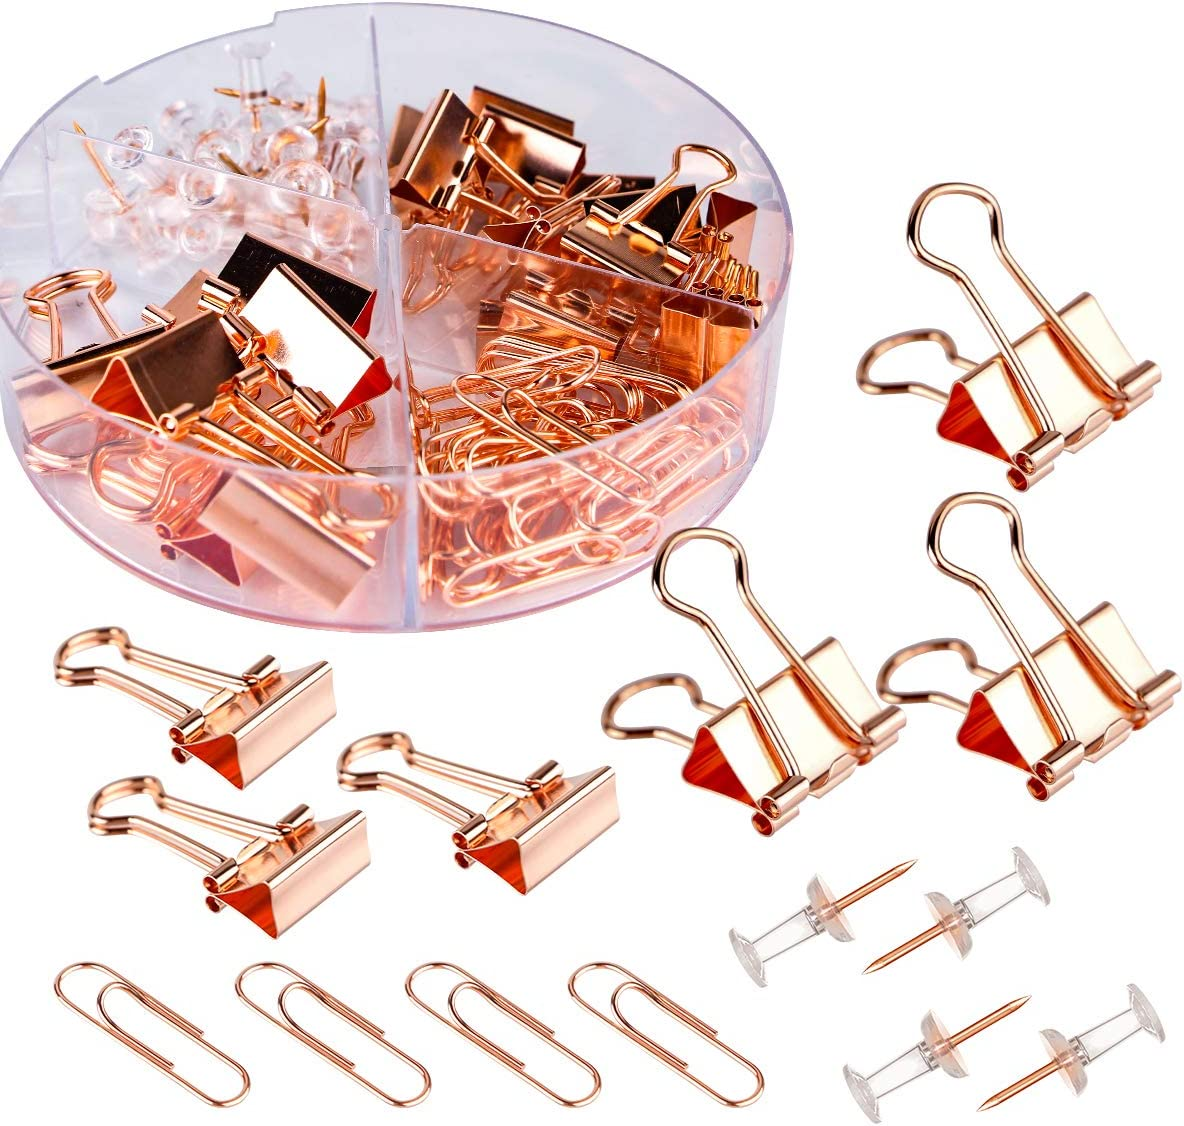 Push Pins Binder Clips Paperclips Sets for Office, School and Home Supplies, Desk Organized, 72 Pcs Assorted Sizes (Rose Gold)